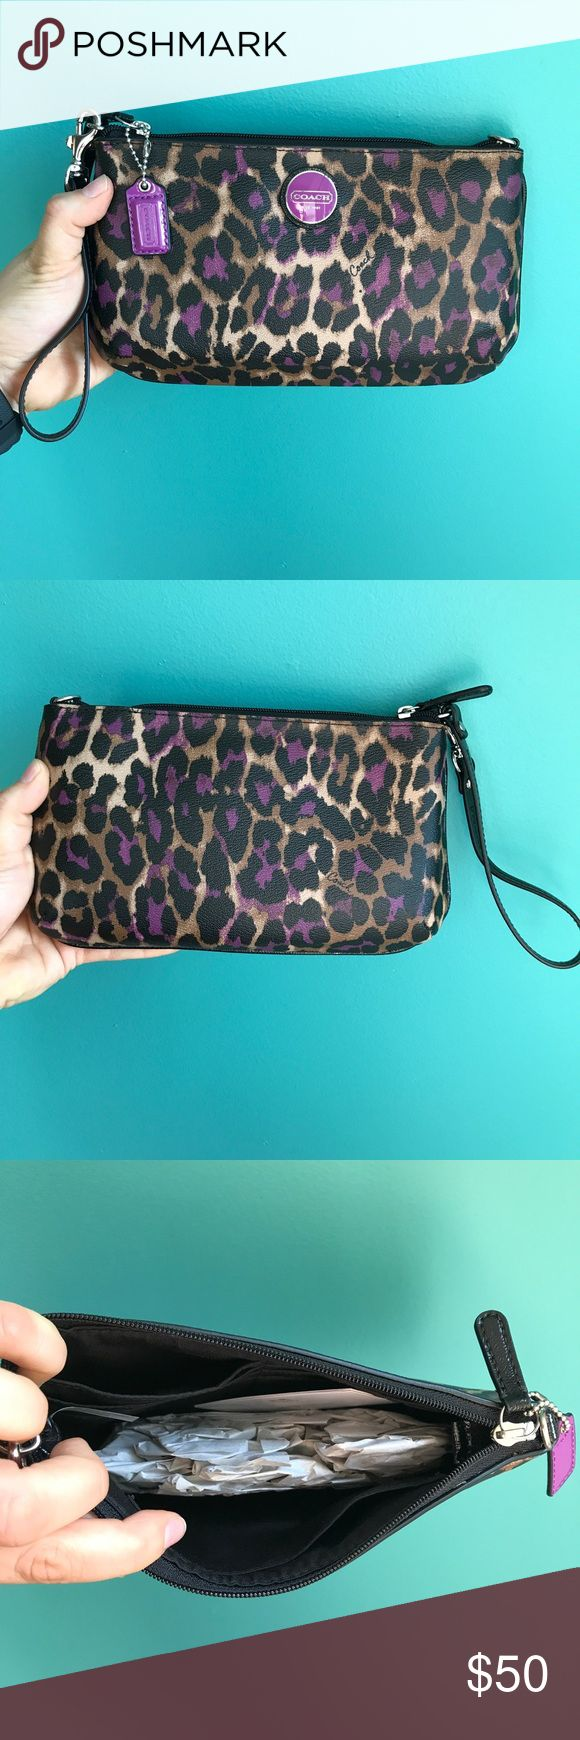 Leopard Coach wristlet Super cute and super girly! Who doesn't love leopard print!? And it's purple! Tags were removed and but I never used it. Pristine condition. It's about 9x5 inches. Silver hardware. Feel free to ask questions. No trades! Coach Bags Clutches & Wristlets